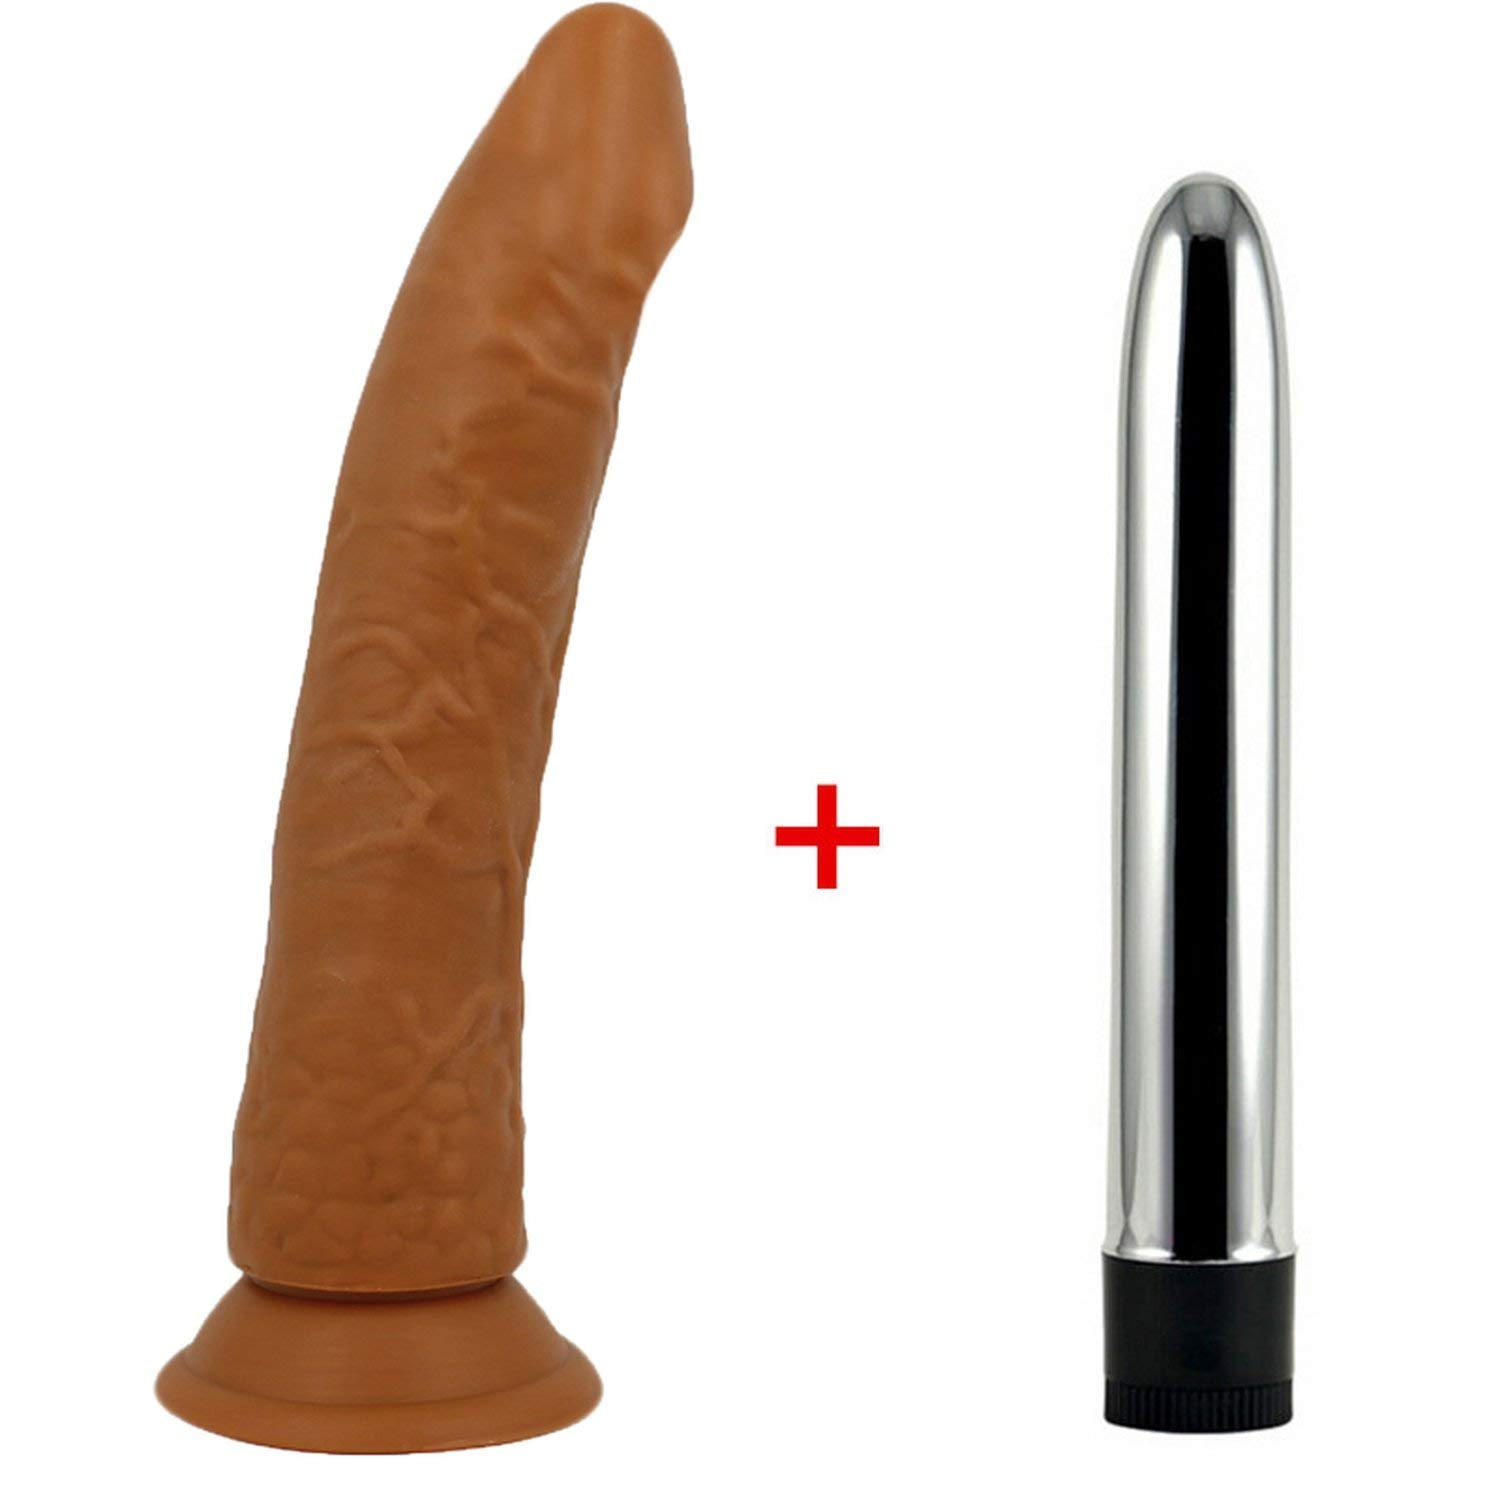 Angelato Love Enjoy 21cm Long Big Realistic Jelly Penis with Strong Suction Cup for Woman,ONLY Vibrator